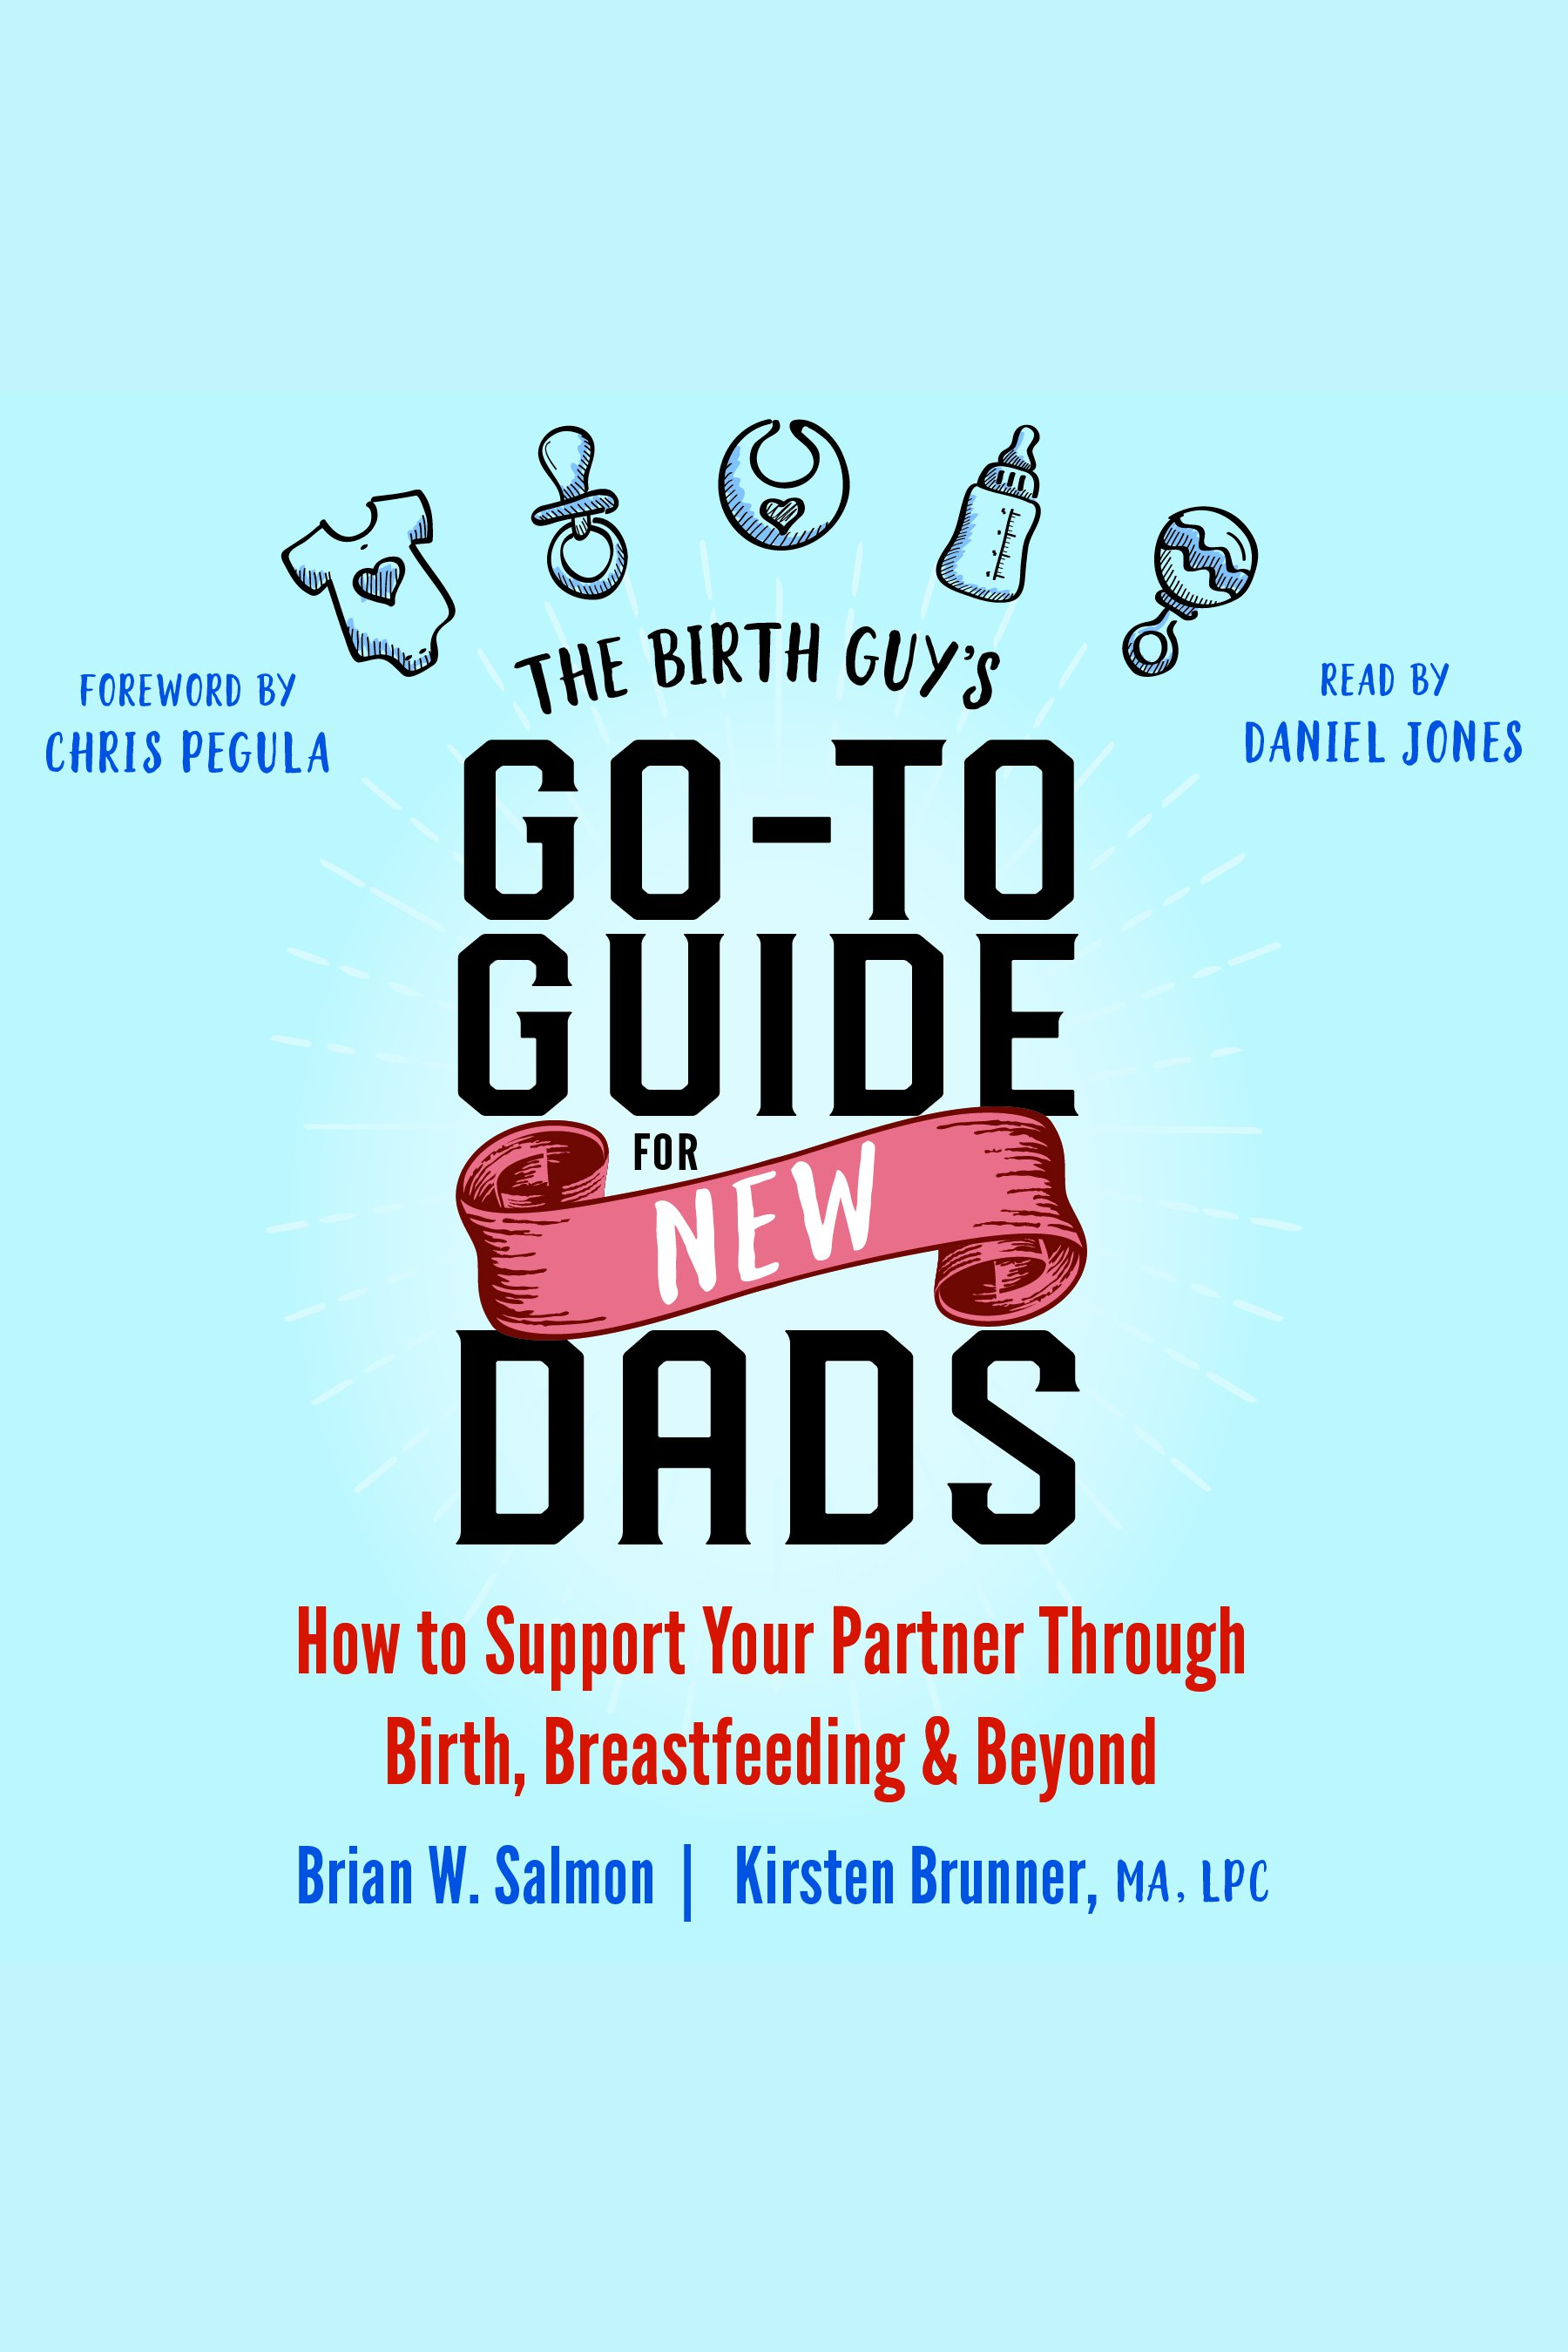 The Birth Guy's Go-To Guide for New Dads